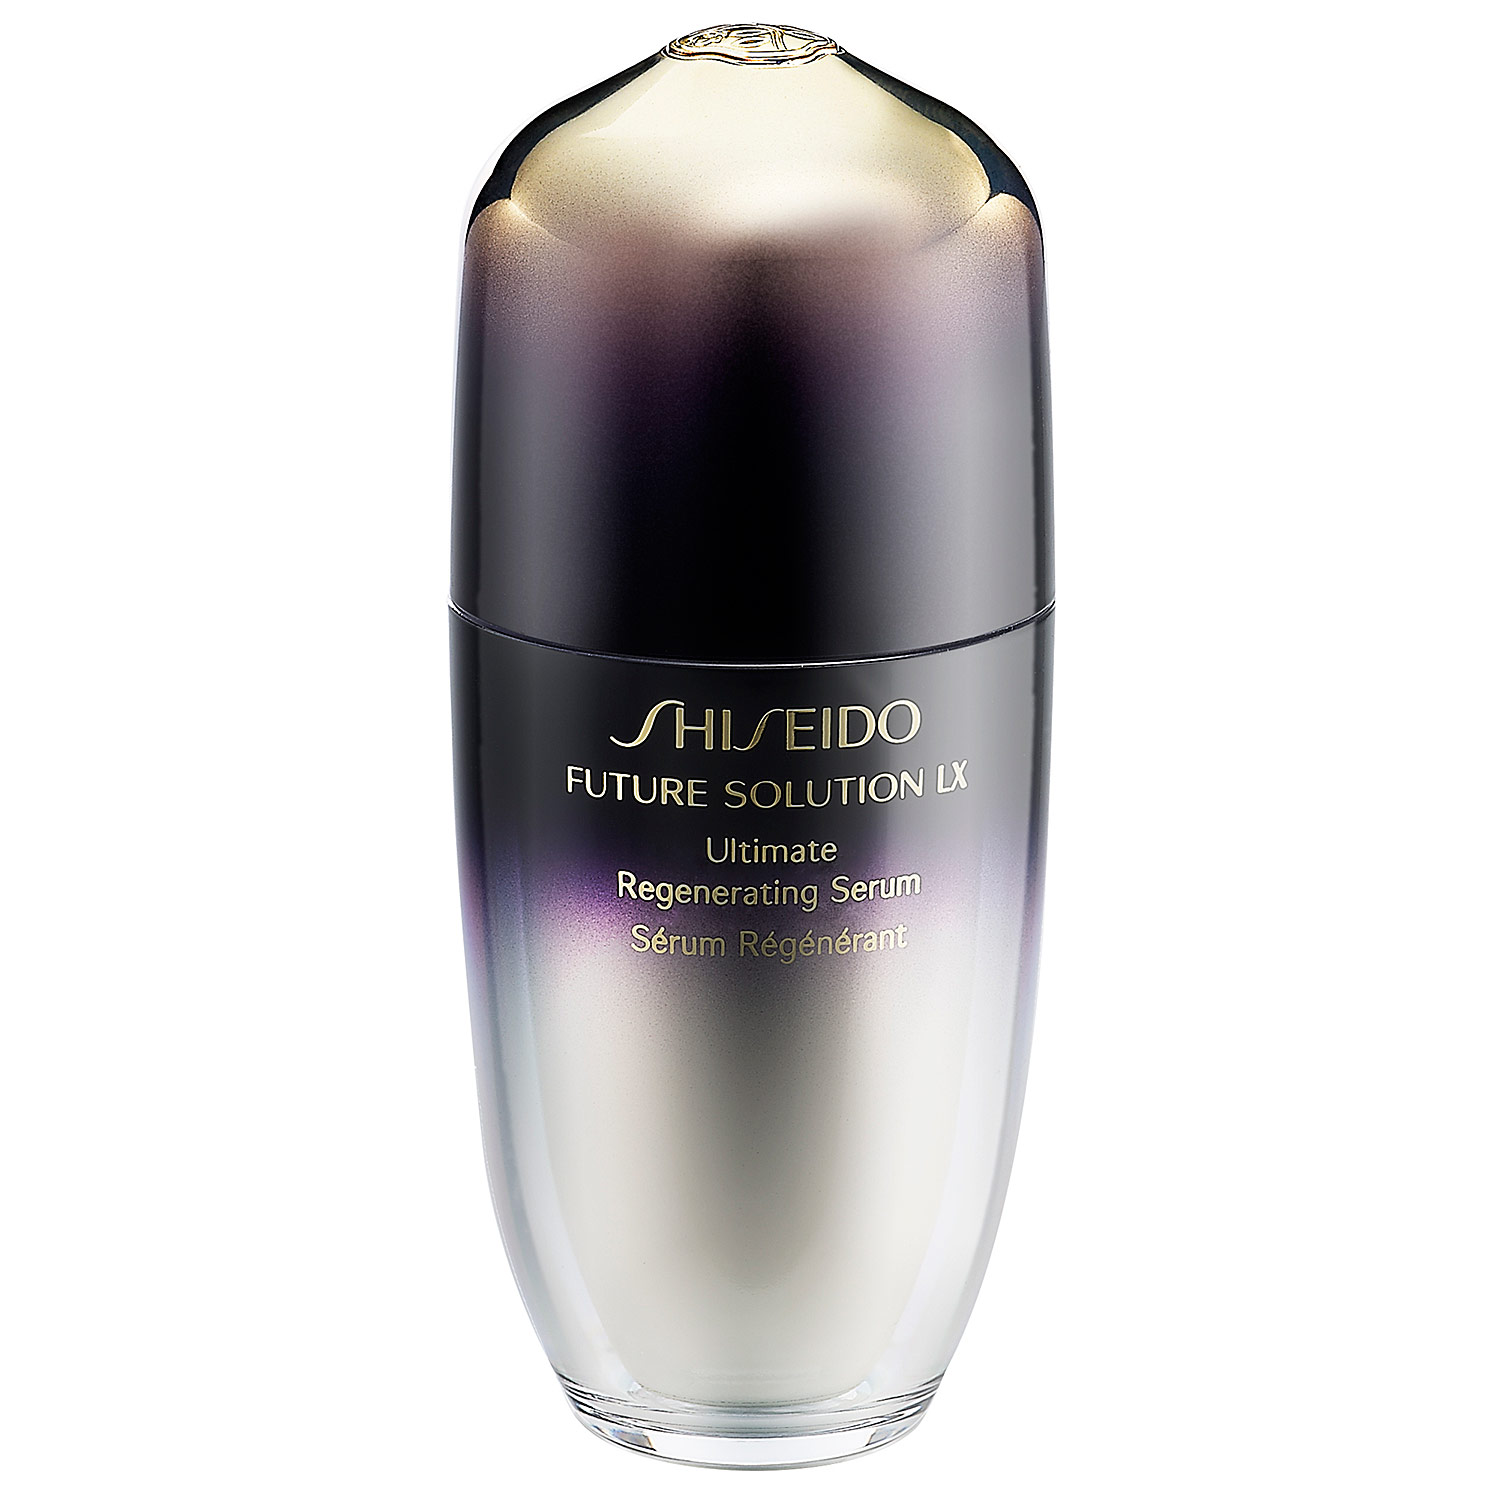 Tinh chất dưỡng da Shiseido Future Solution LX Ultimate Regenerating Serum